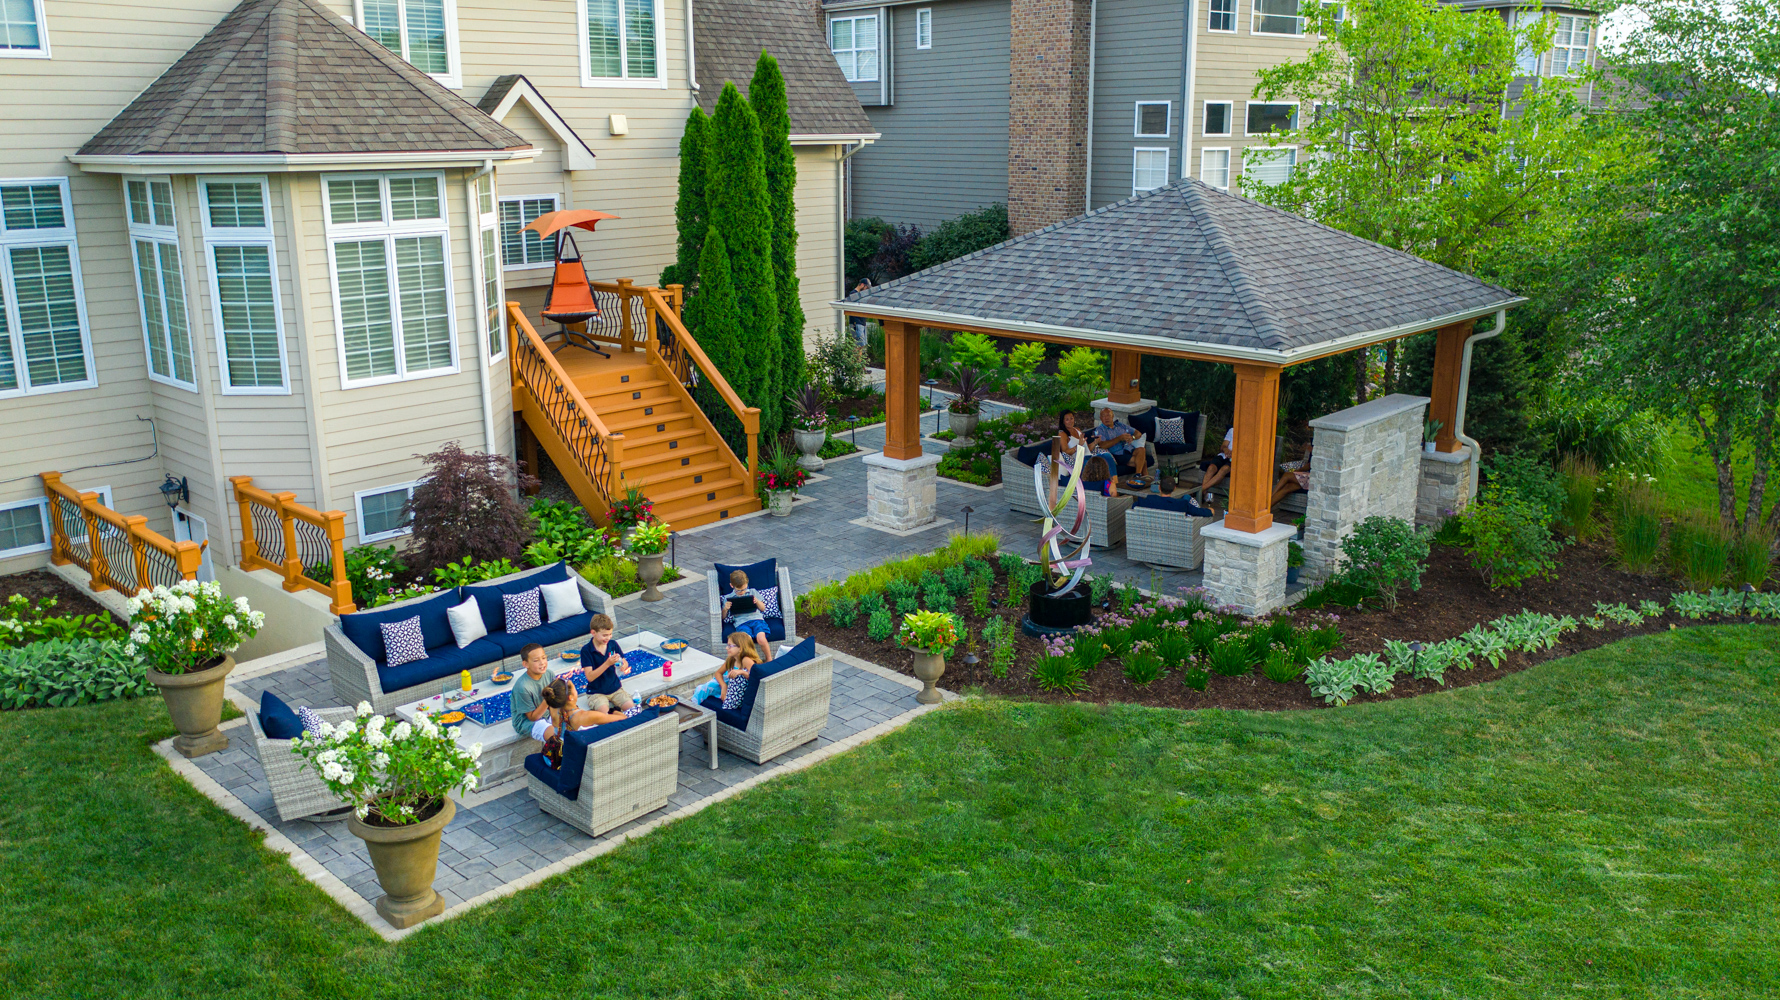 aerial-fire feature-sculpture-pergola-customer-patio-paver-seating-container-landscaping-plants-planting-lawn-steps